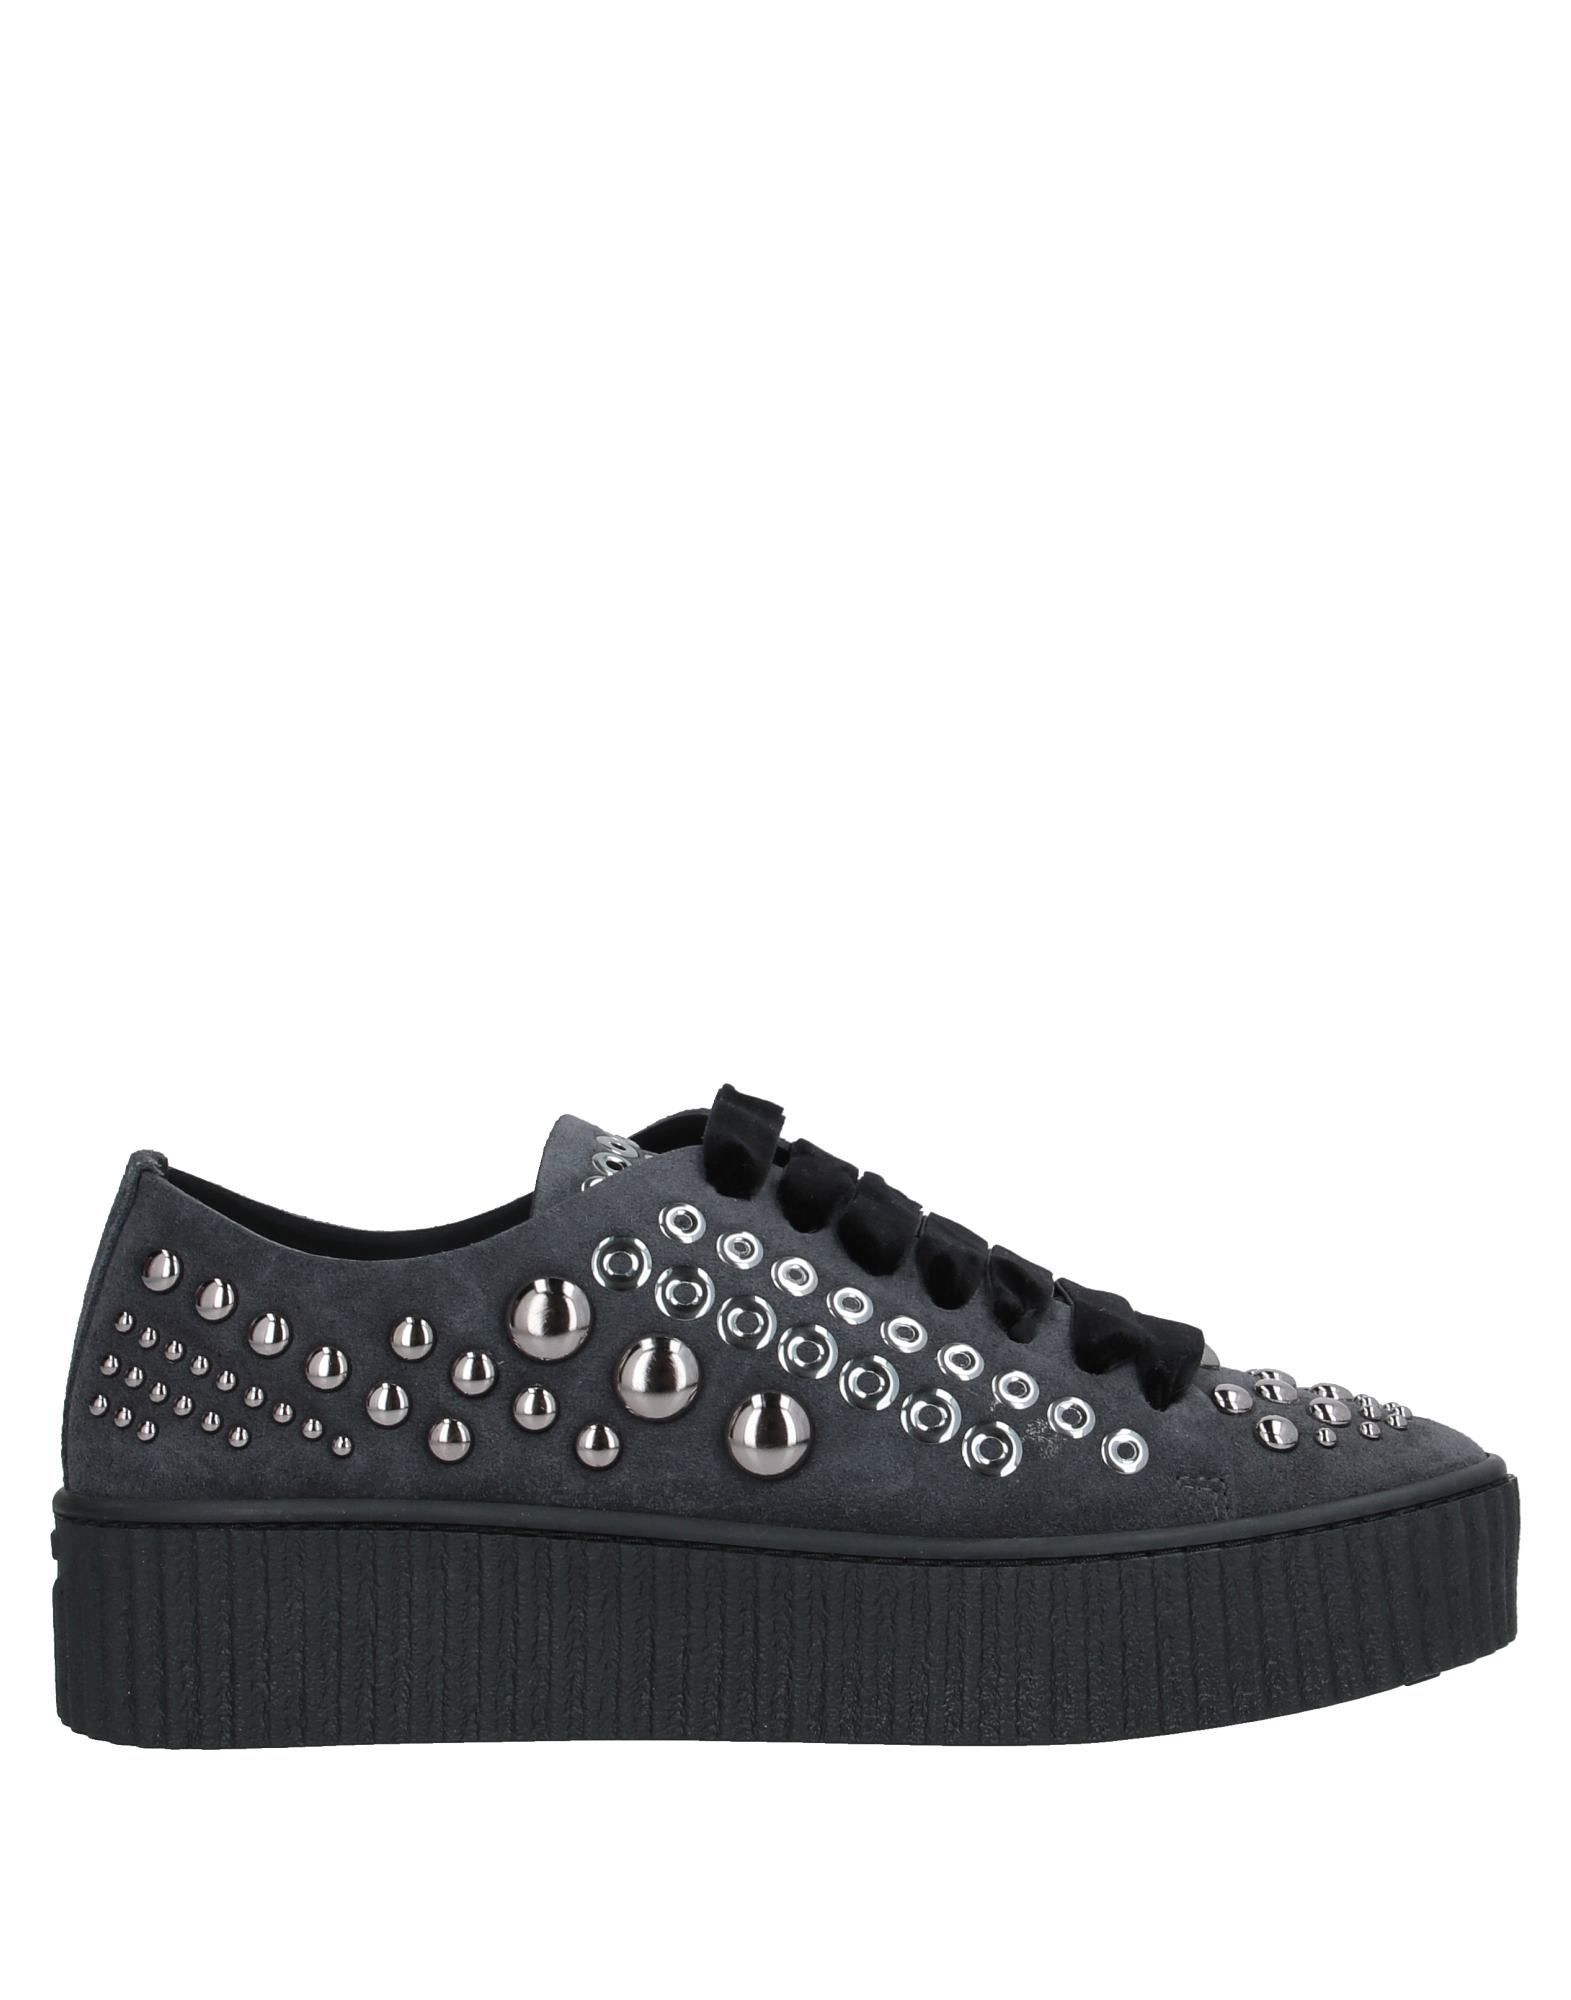 Pinko Lead Leather Studded Sneakers